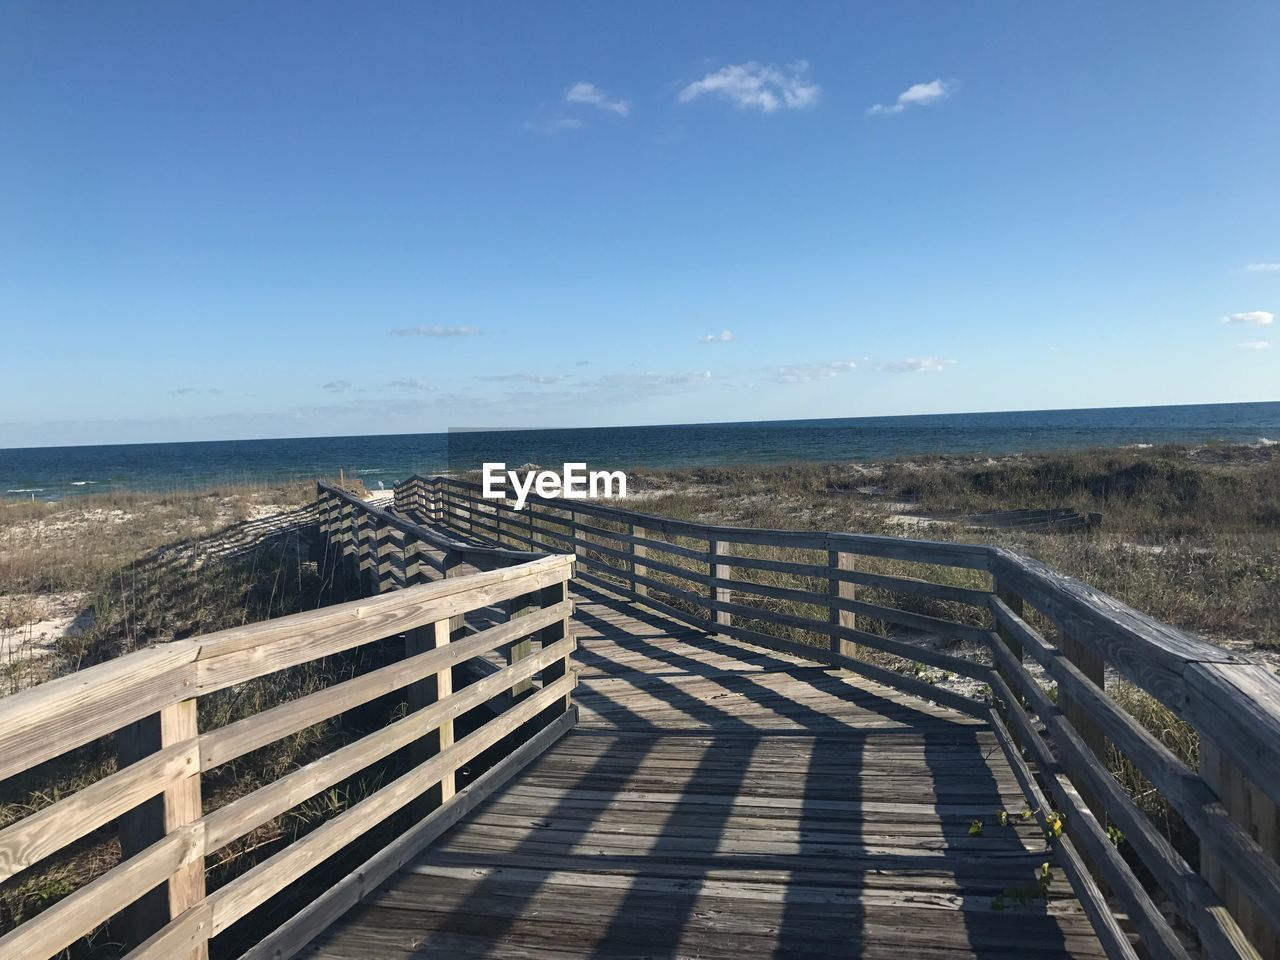 horizon over water, sea, railing, water, scenics, tranquility, day, tranquil scene, sky, nature, beauty in nature, outdoors, sunlight, beach, clear sky, no people, shadow